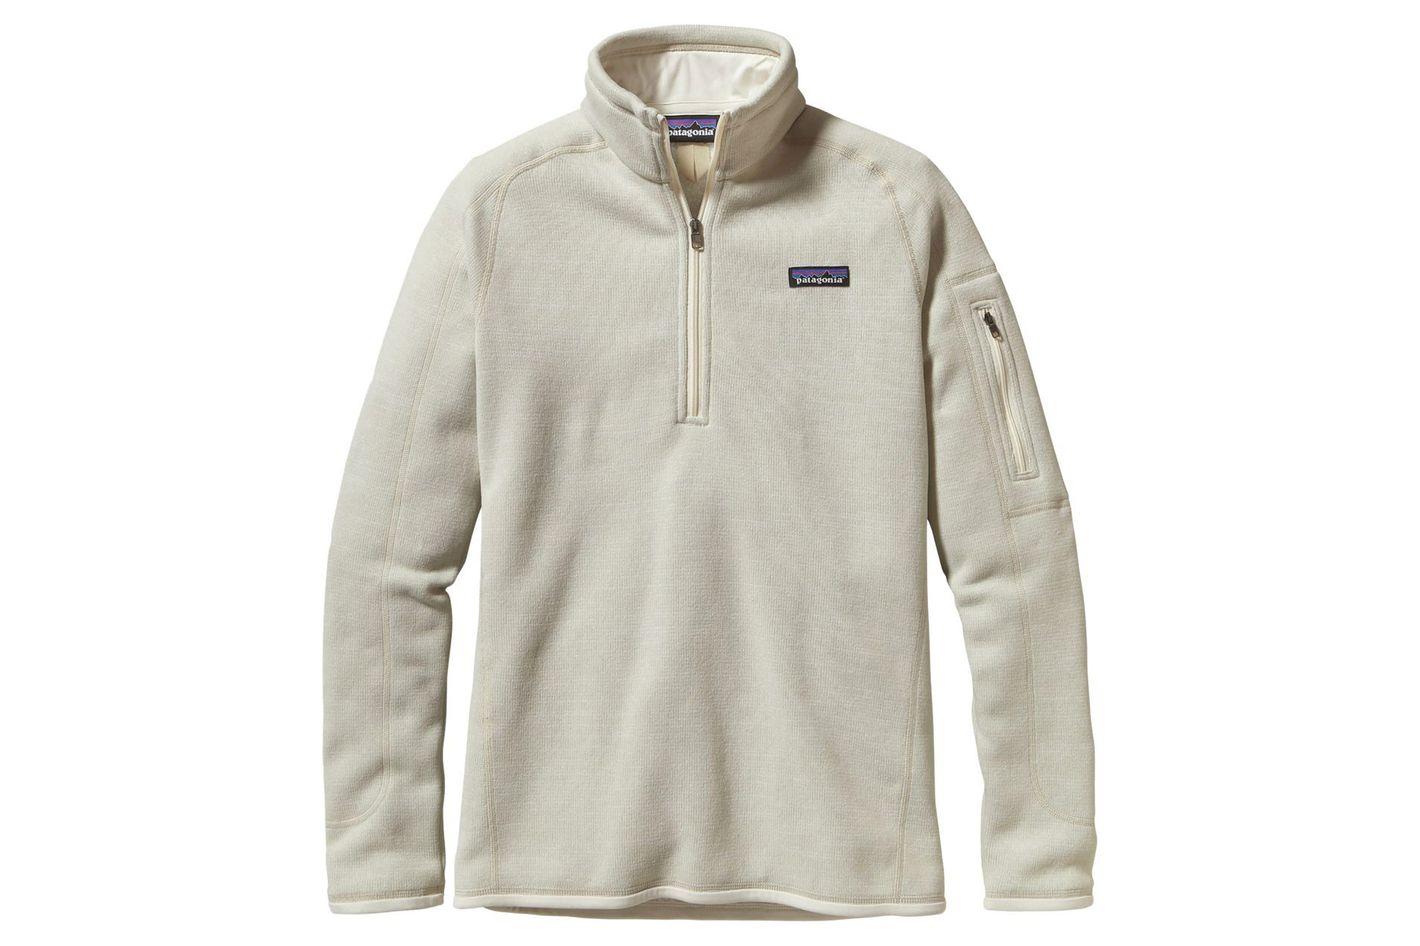 Patagonia Better Sweater 1/4-Zip Fleece Jacket in Raw Linen